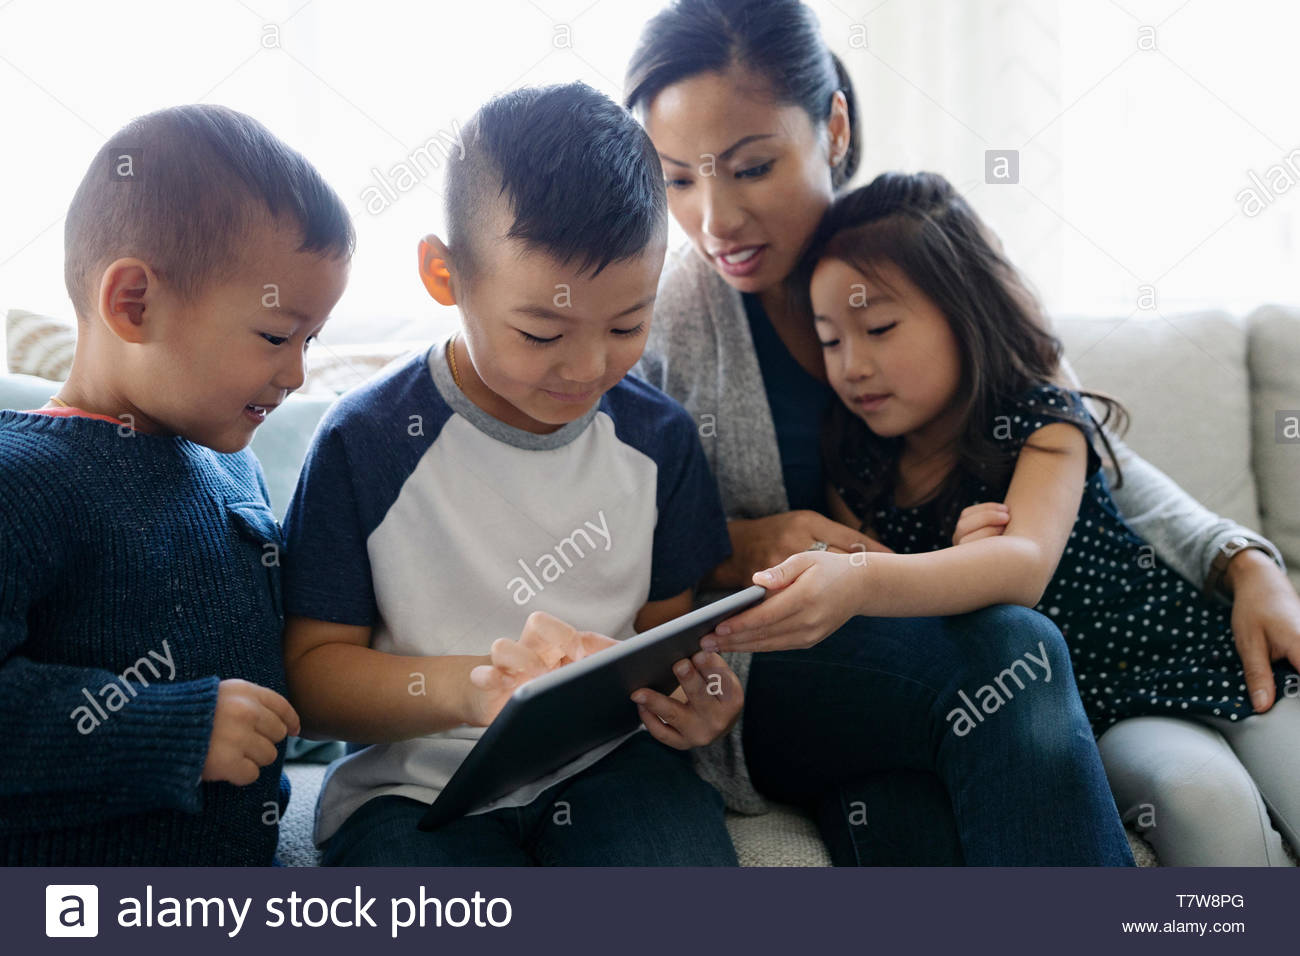 Mother and children using digital tablet on sofa - Stock Image